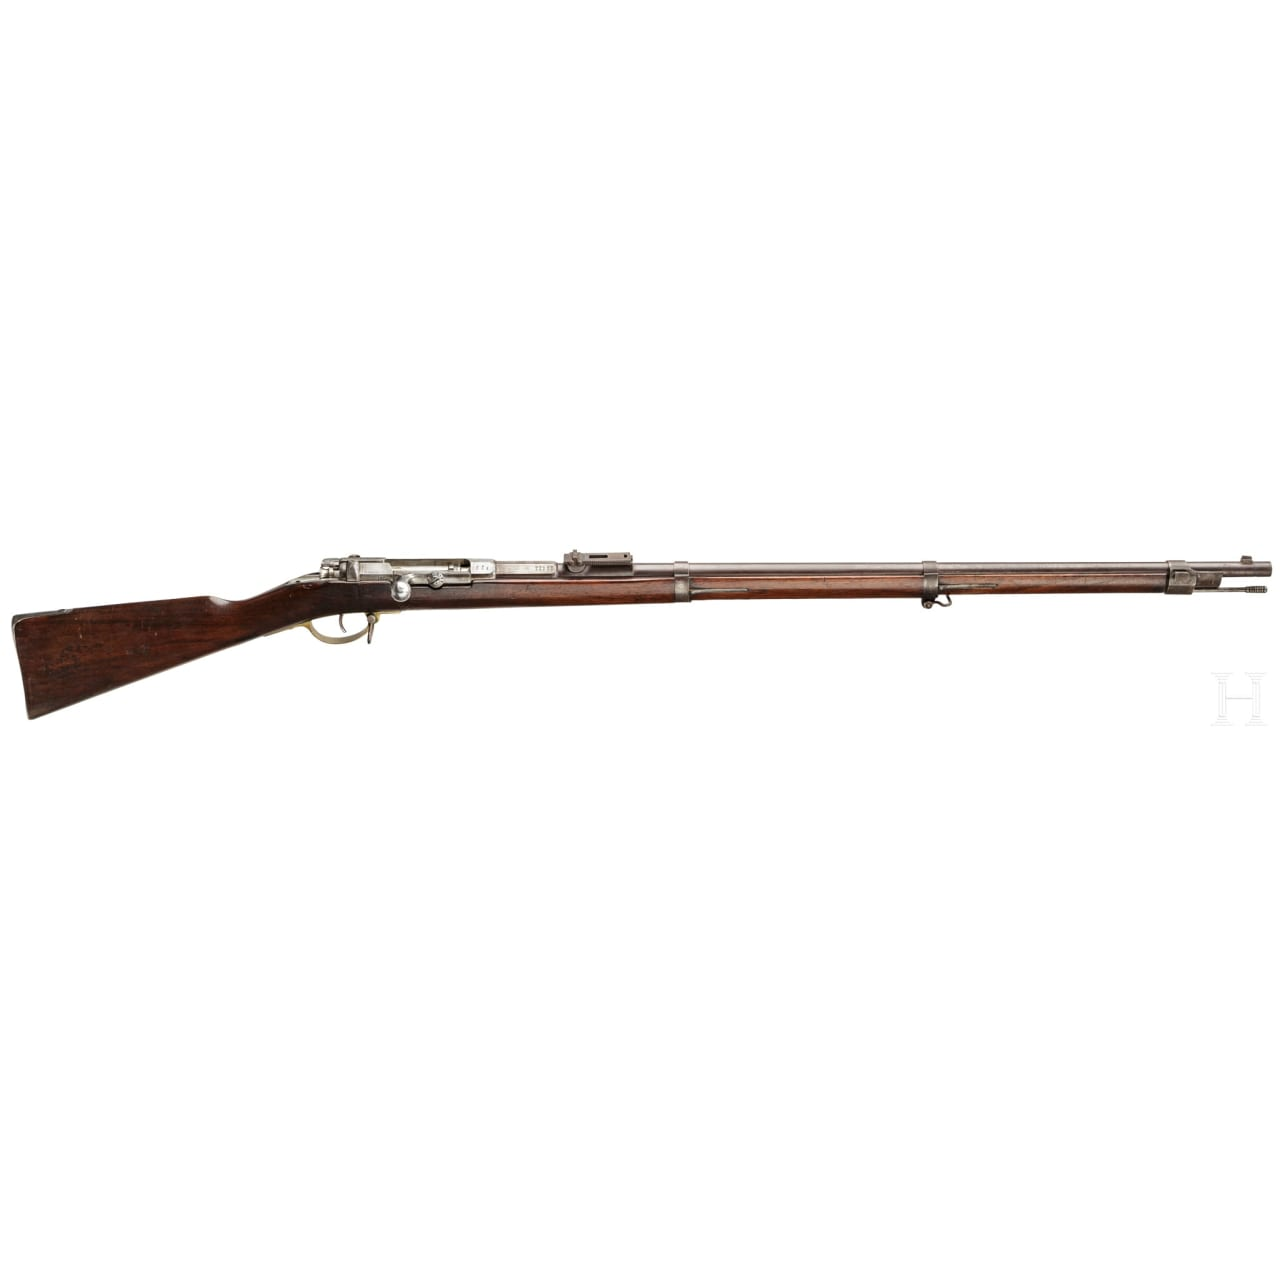 A Mauser Infantry Rifle M 1871